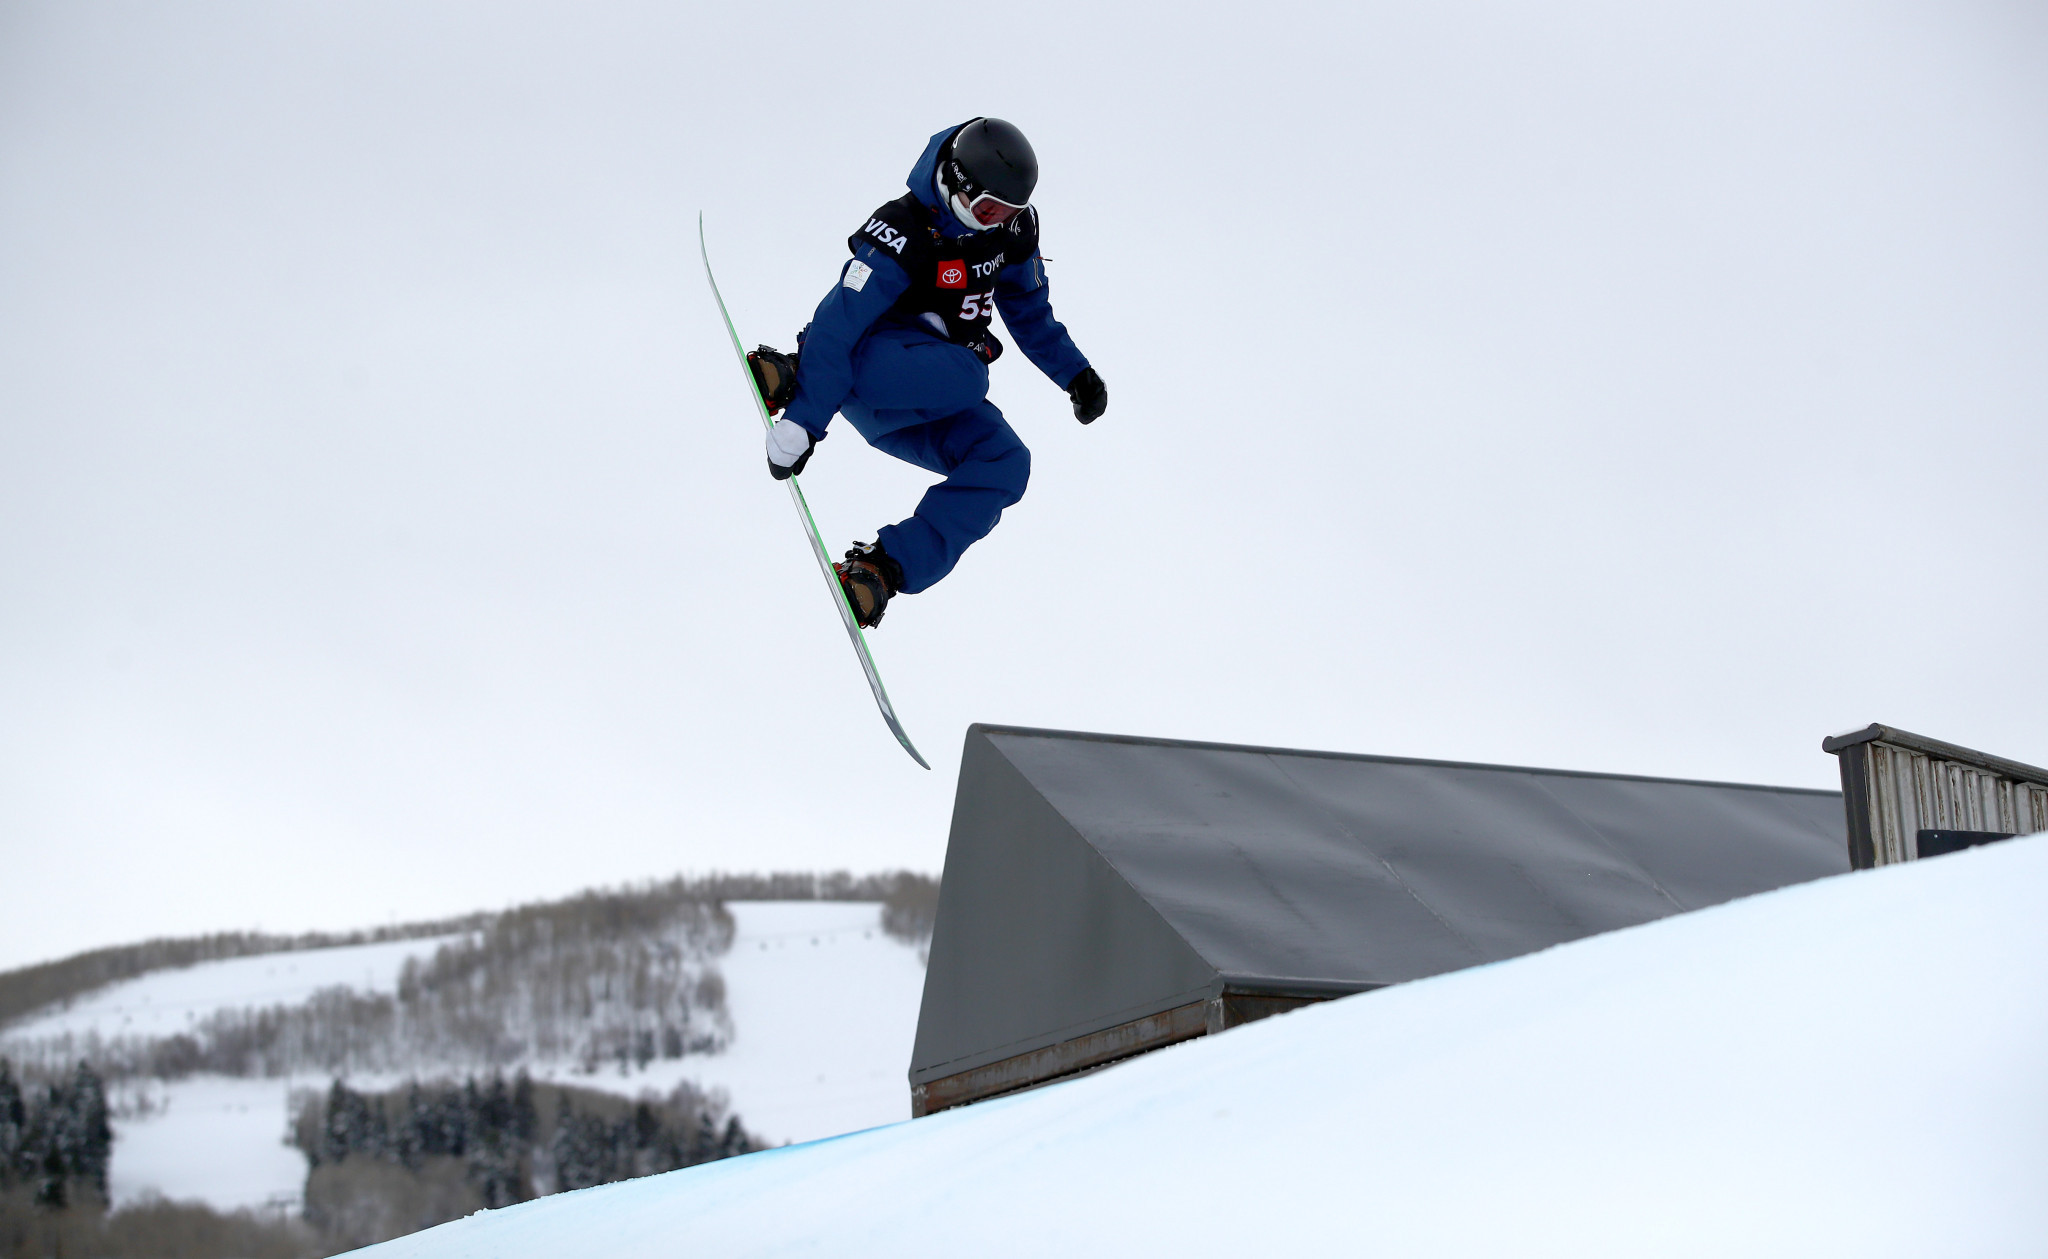 Ski and Snowboard Australia chief executive Michael Kennedy hopes the New South Wales initiative can establish better training facilities for Australian winter sports athletes ©Getty Images